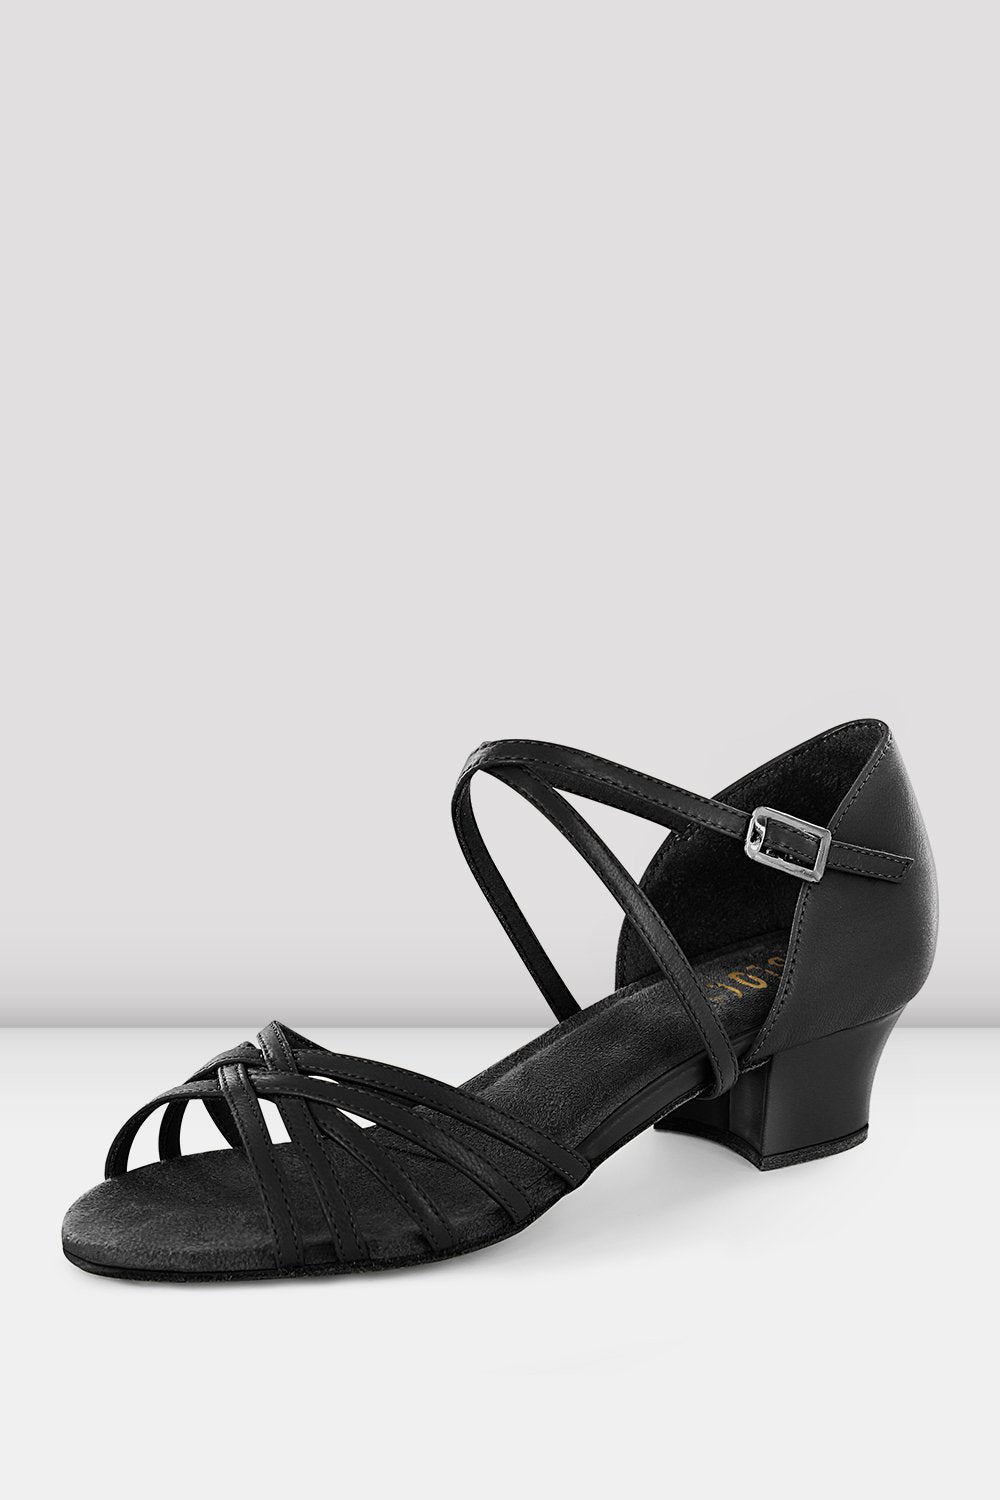 Ladies Annabella Latin Practice Shoes - BLOCH US